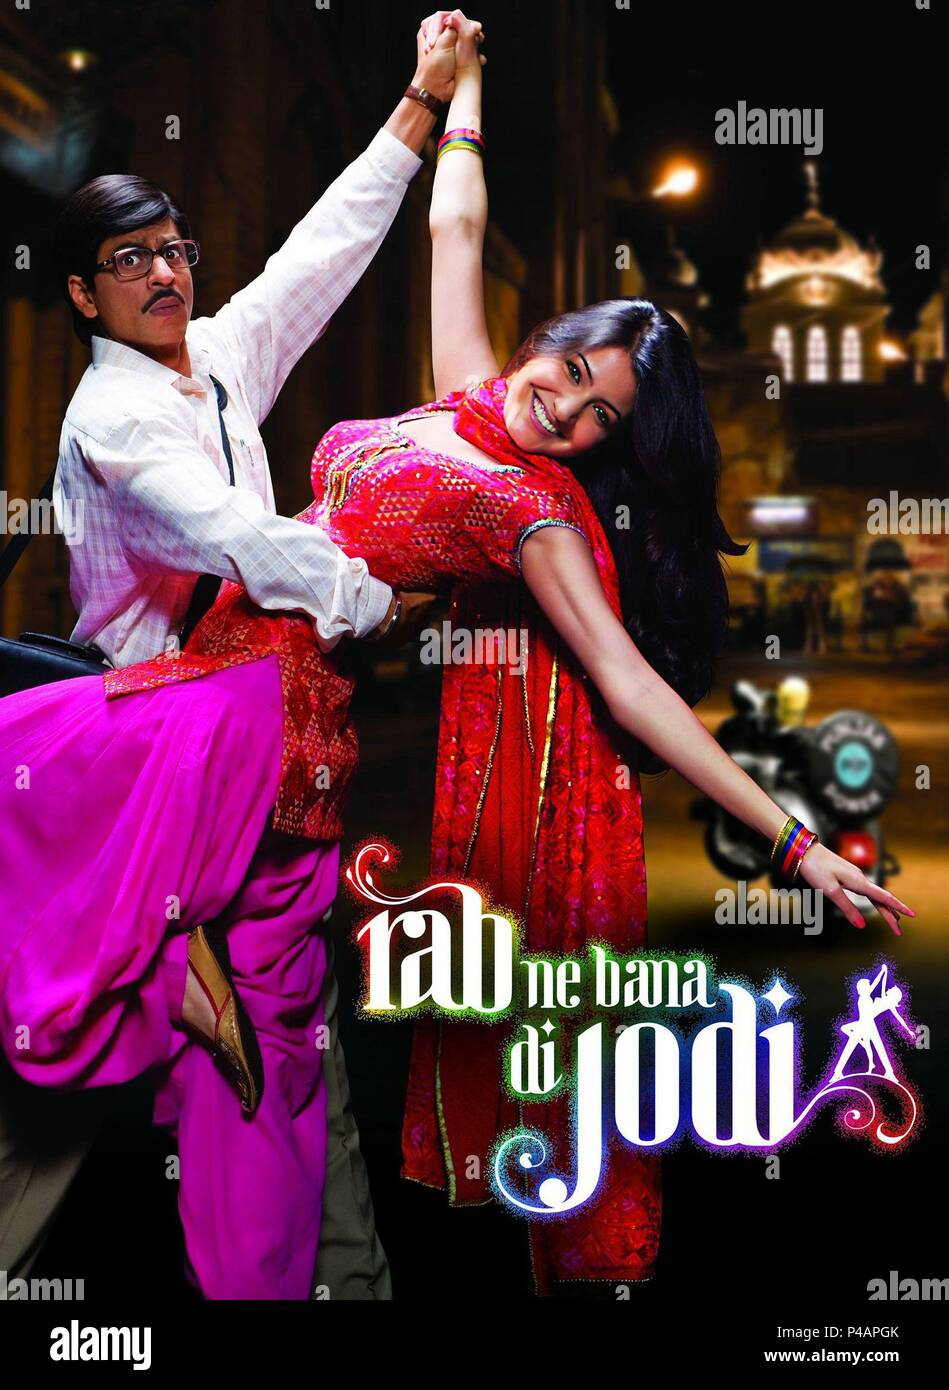 original film title: rab ne bana di jodi. english title: rab ne bana